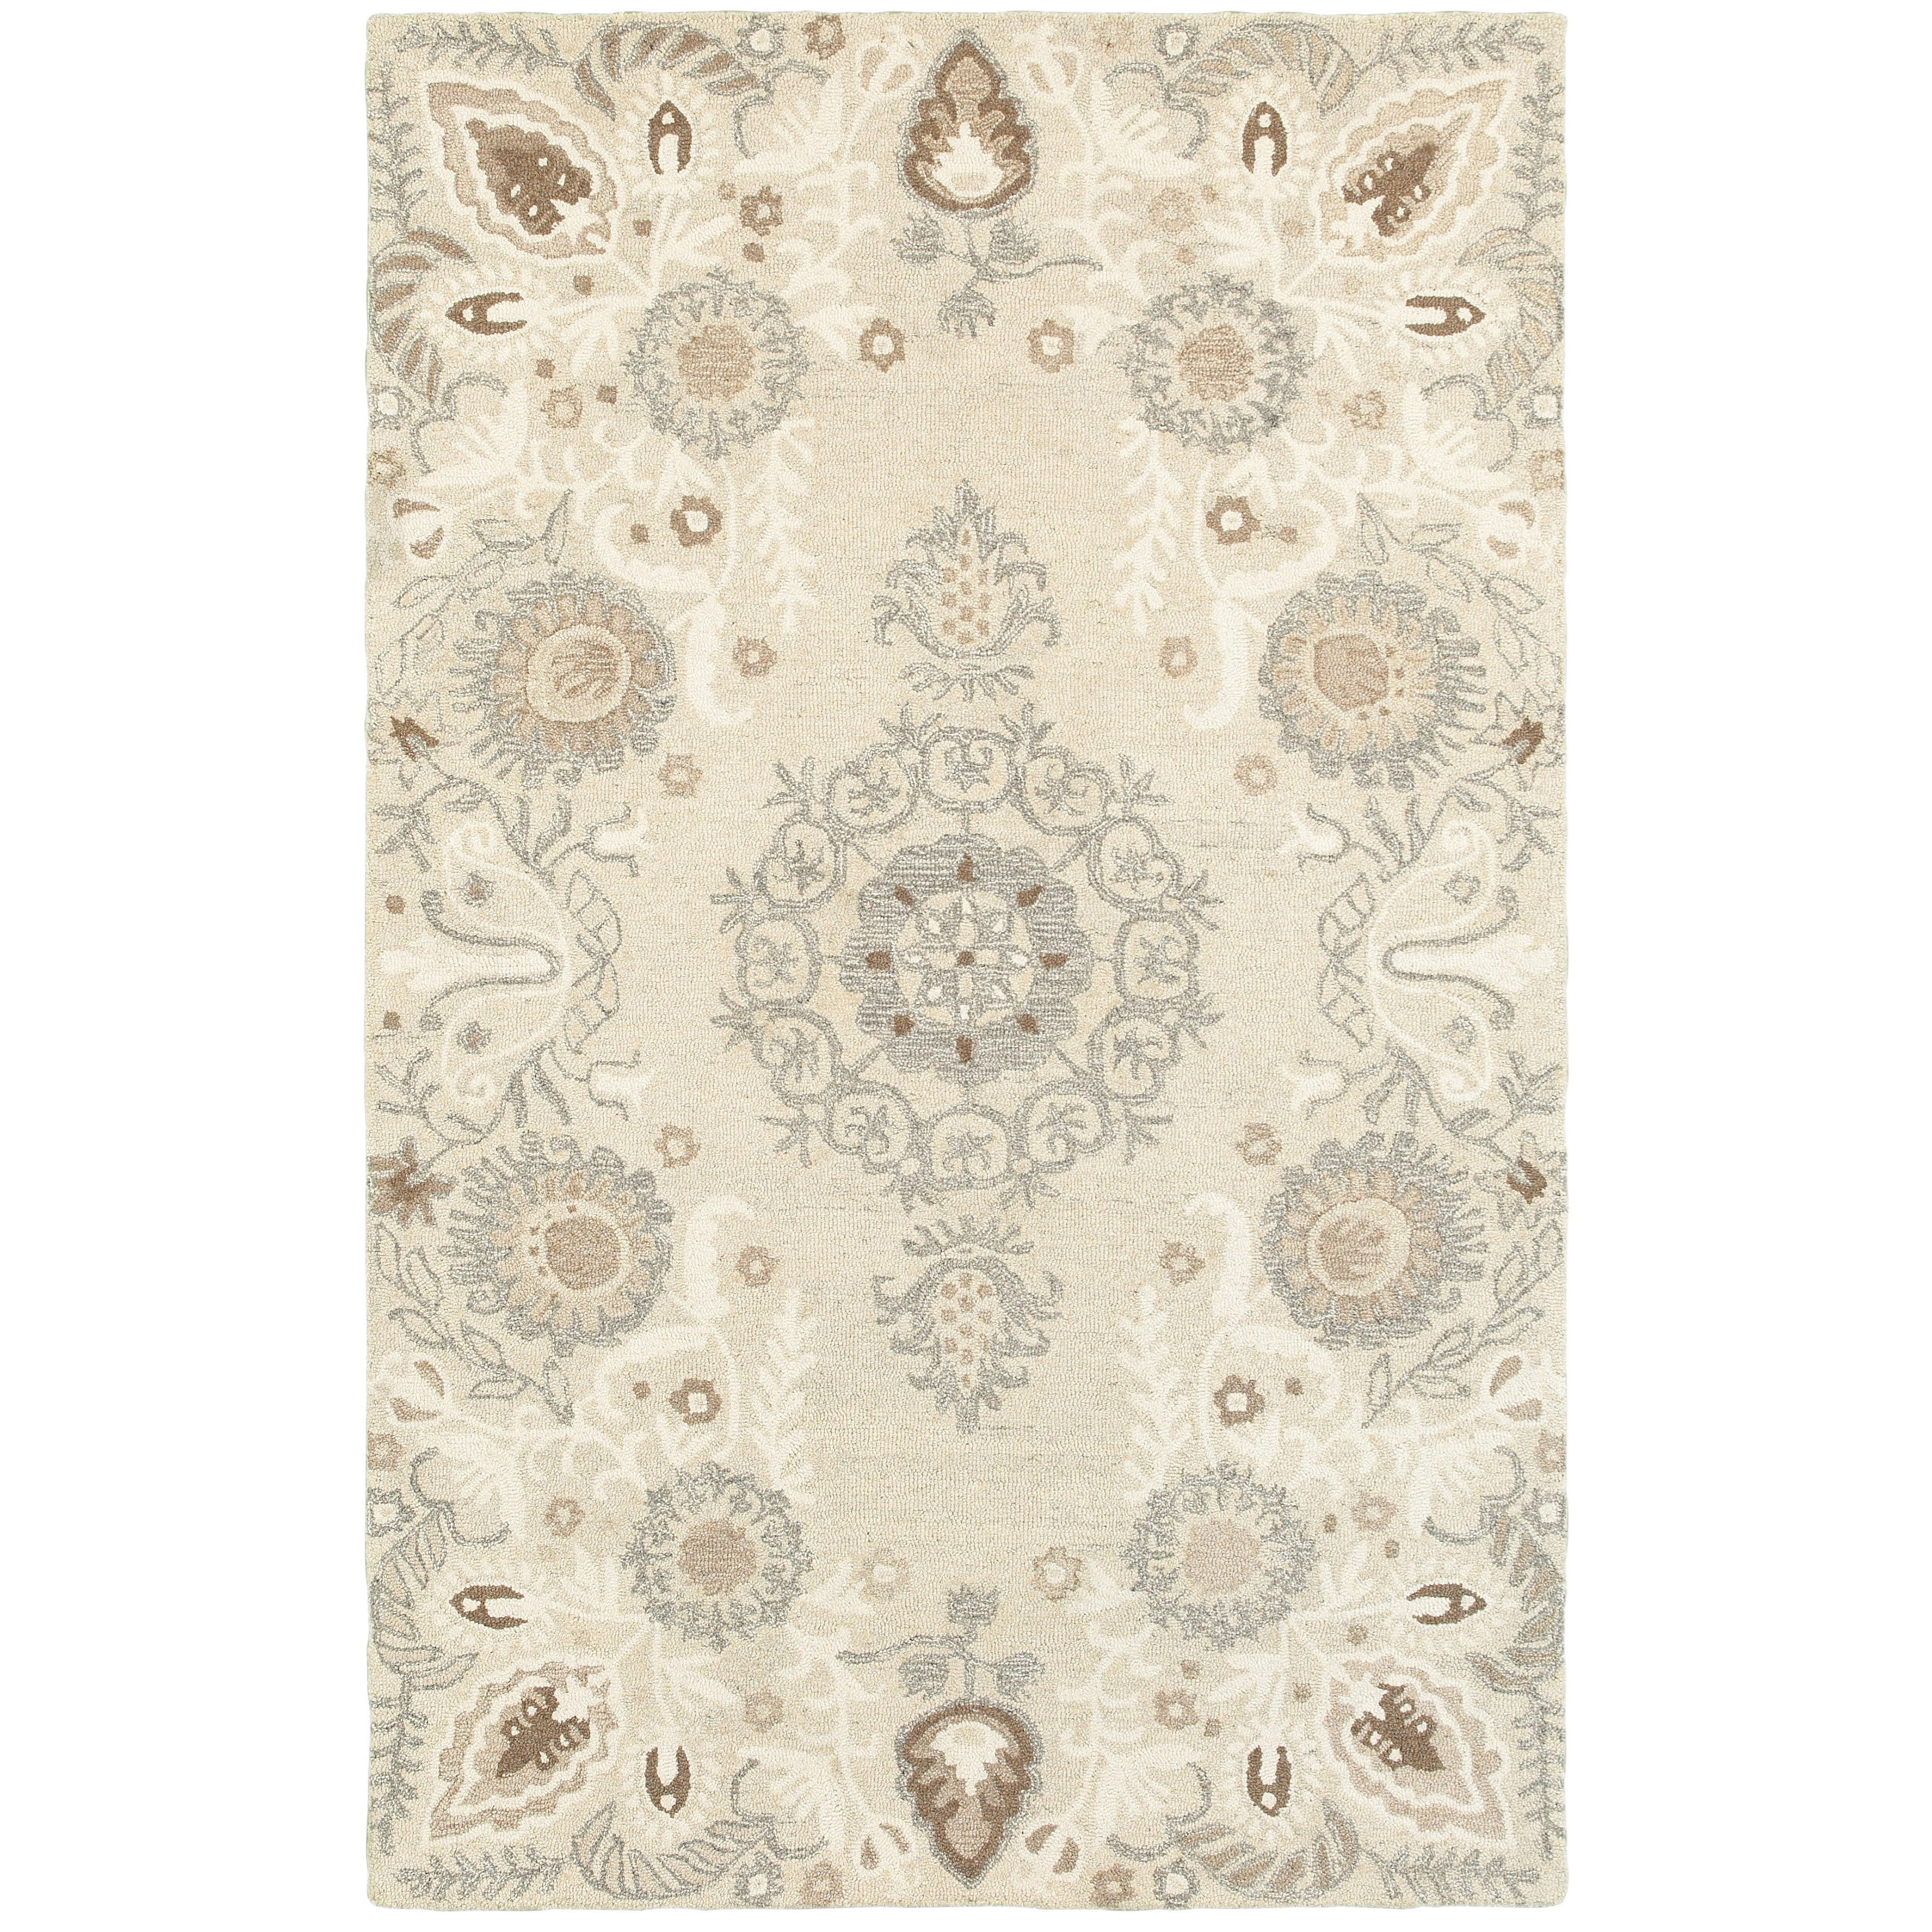 "10' 0"" X 13' 0"" Rectangle Rug"